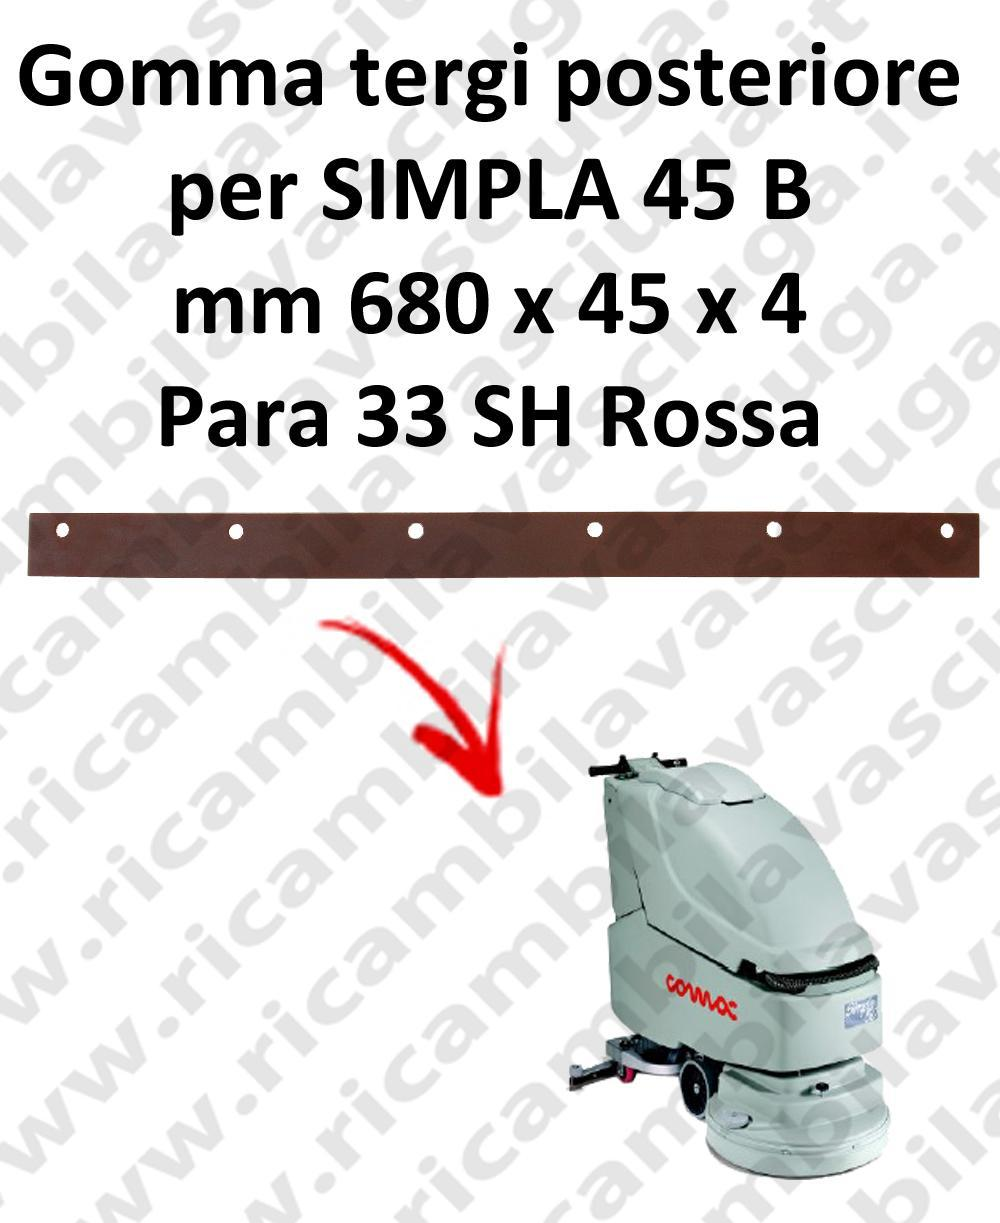 SIMPLA 45 B Back Squeegee rubber for COMAC accessories, reaplacement, spare parts,o scrubber dryer squeegee